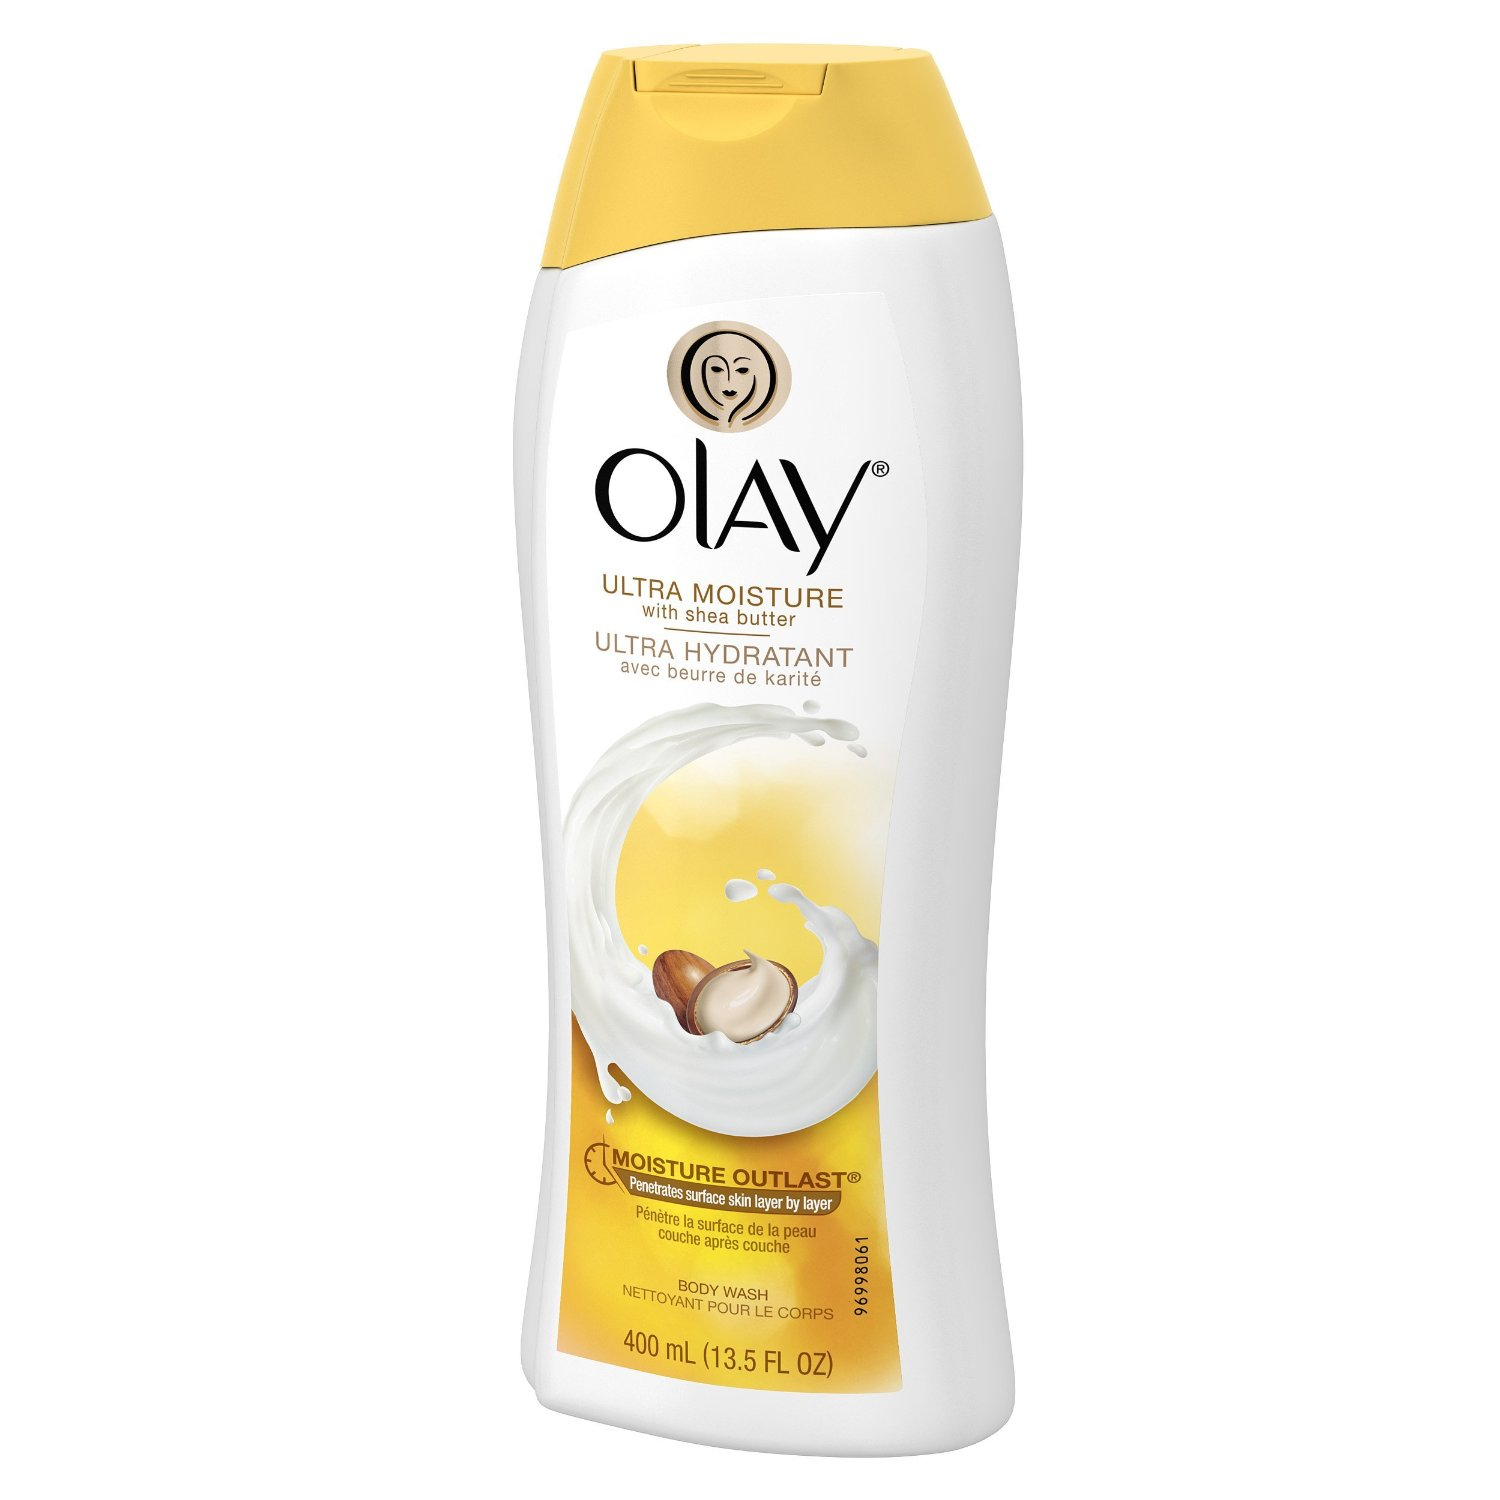 Olay Ultra Moisture Moisturizing Body Wash With Shea Butter product image